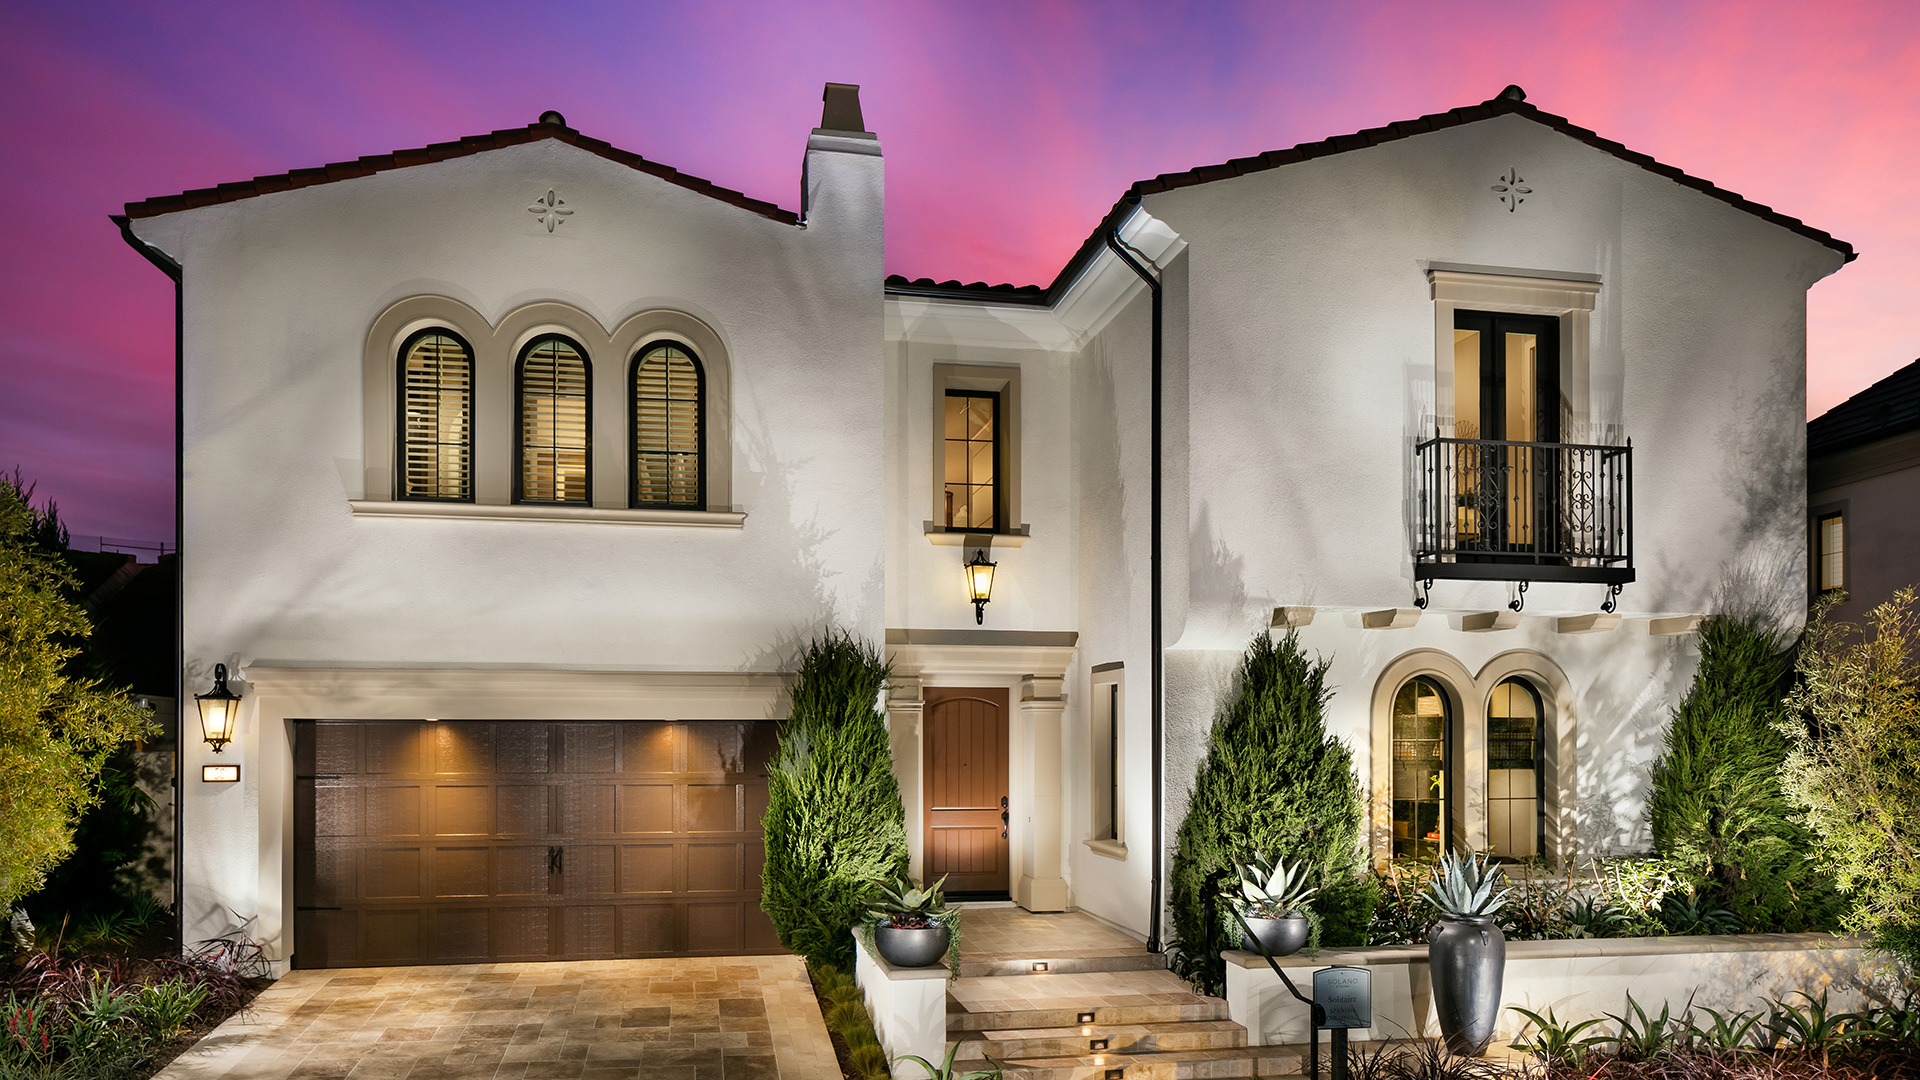 Solano at Altair | The Solitaire Home Design